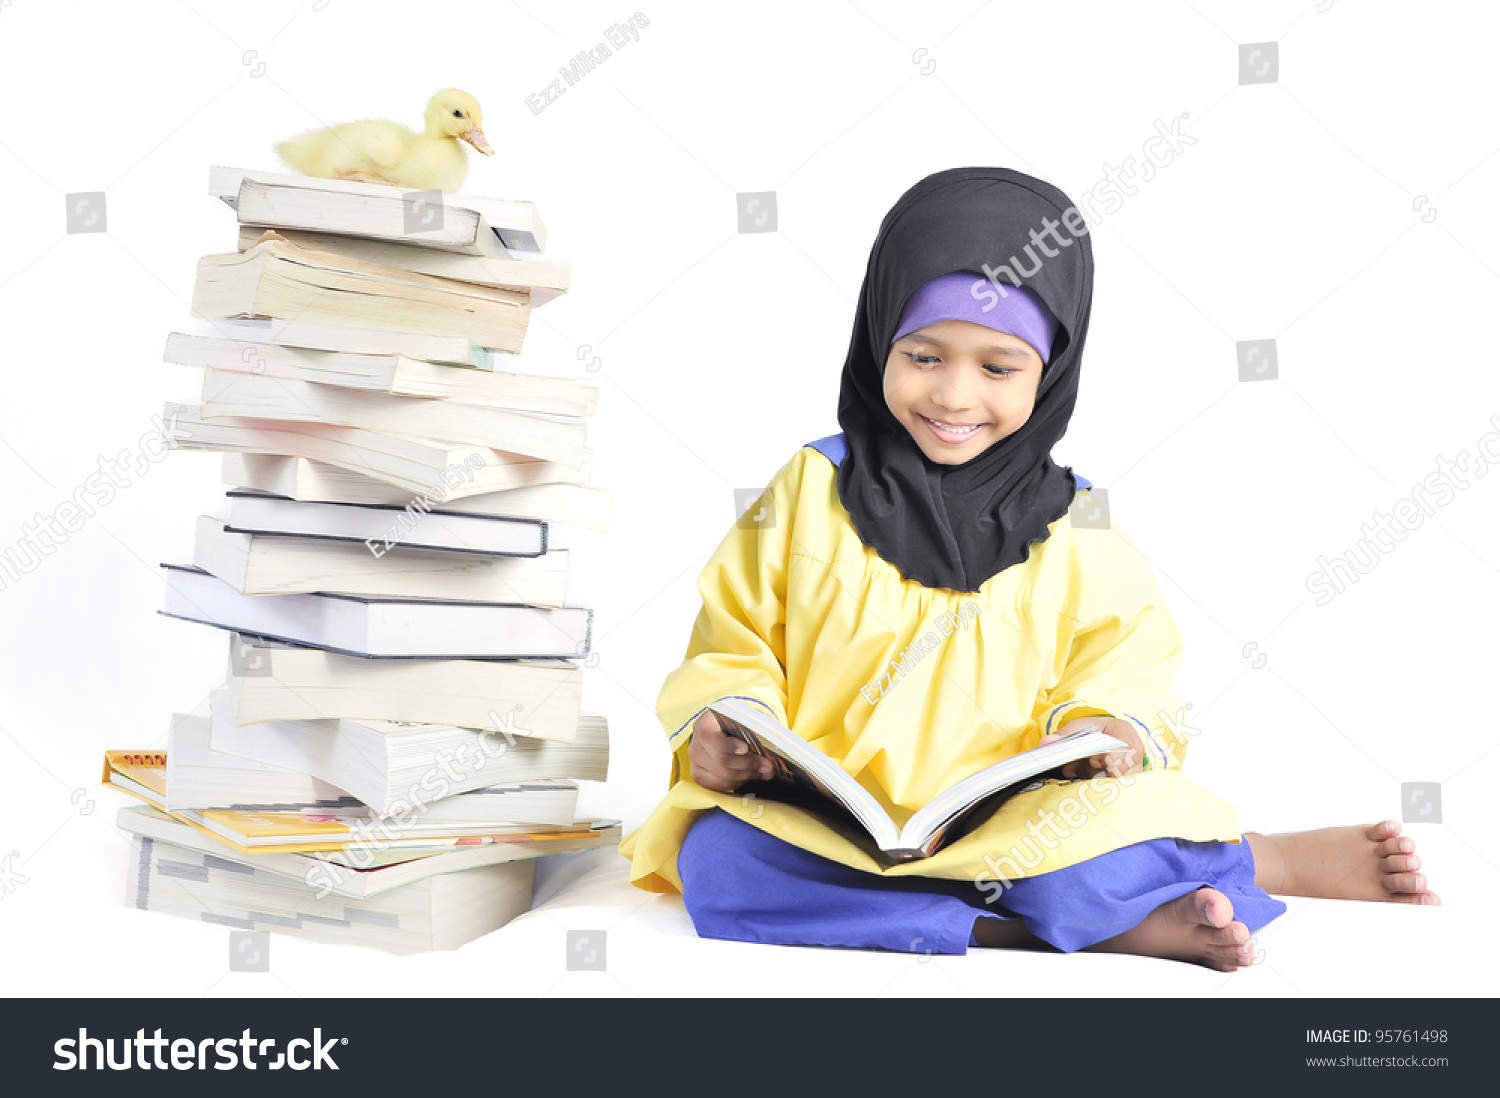 Cute muslim girl reading book in isolated white background 95761498